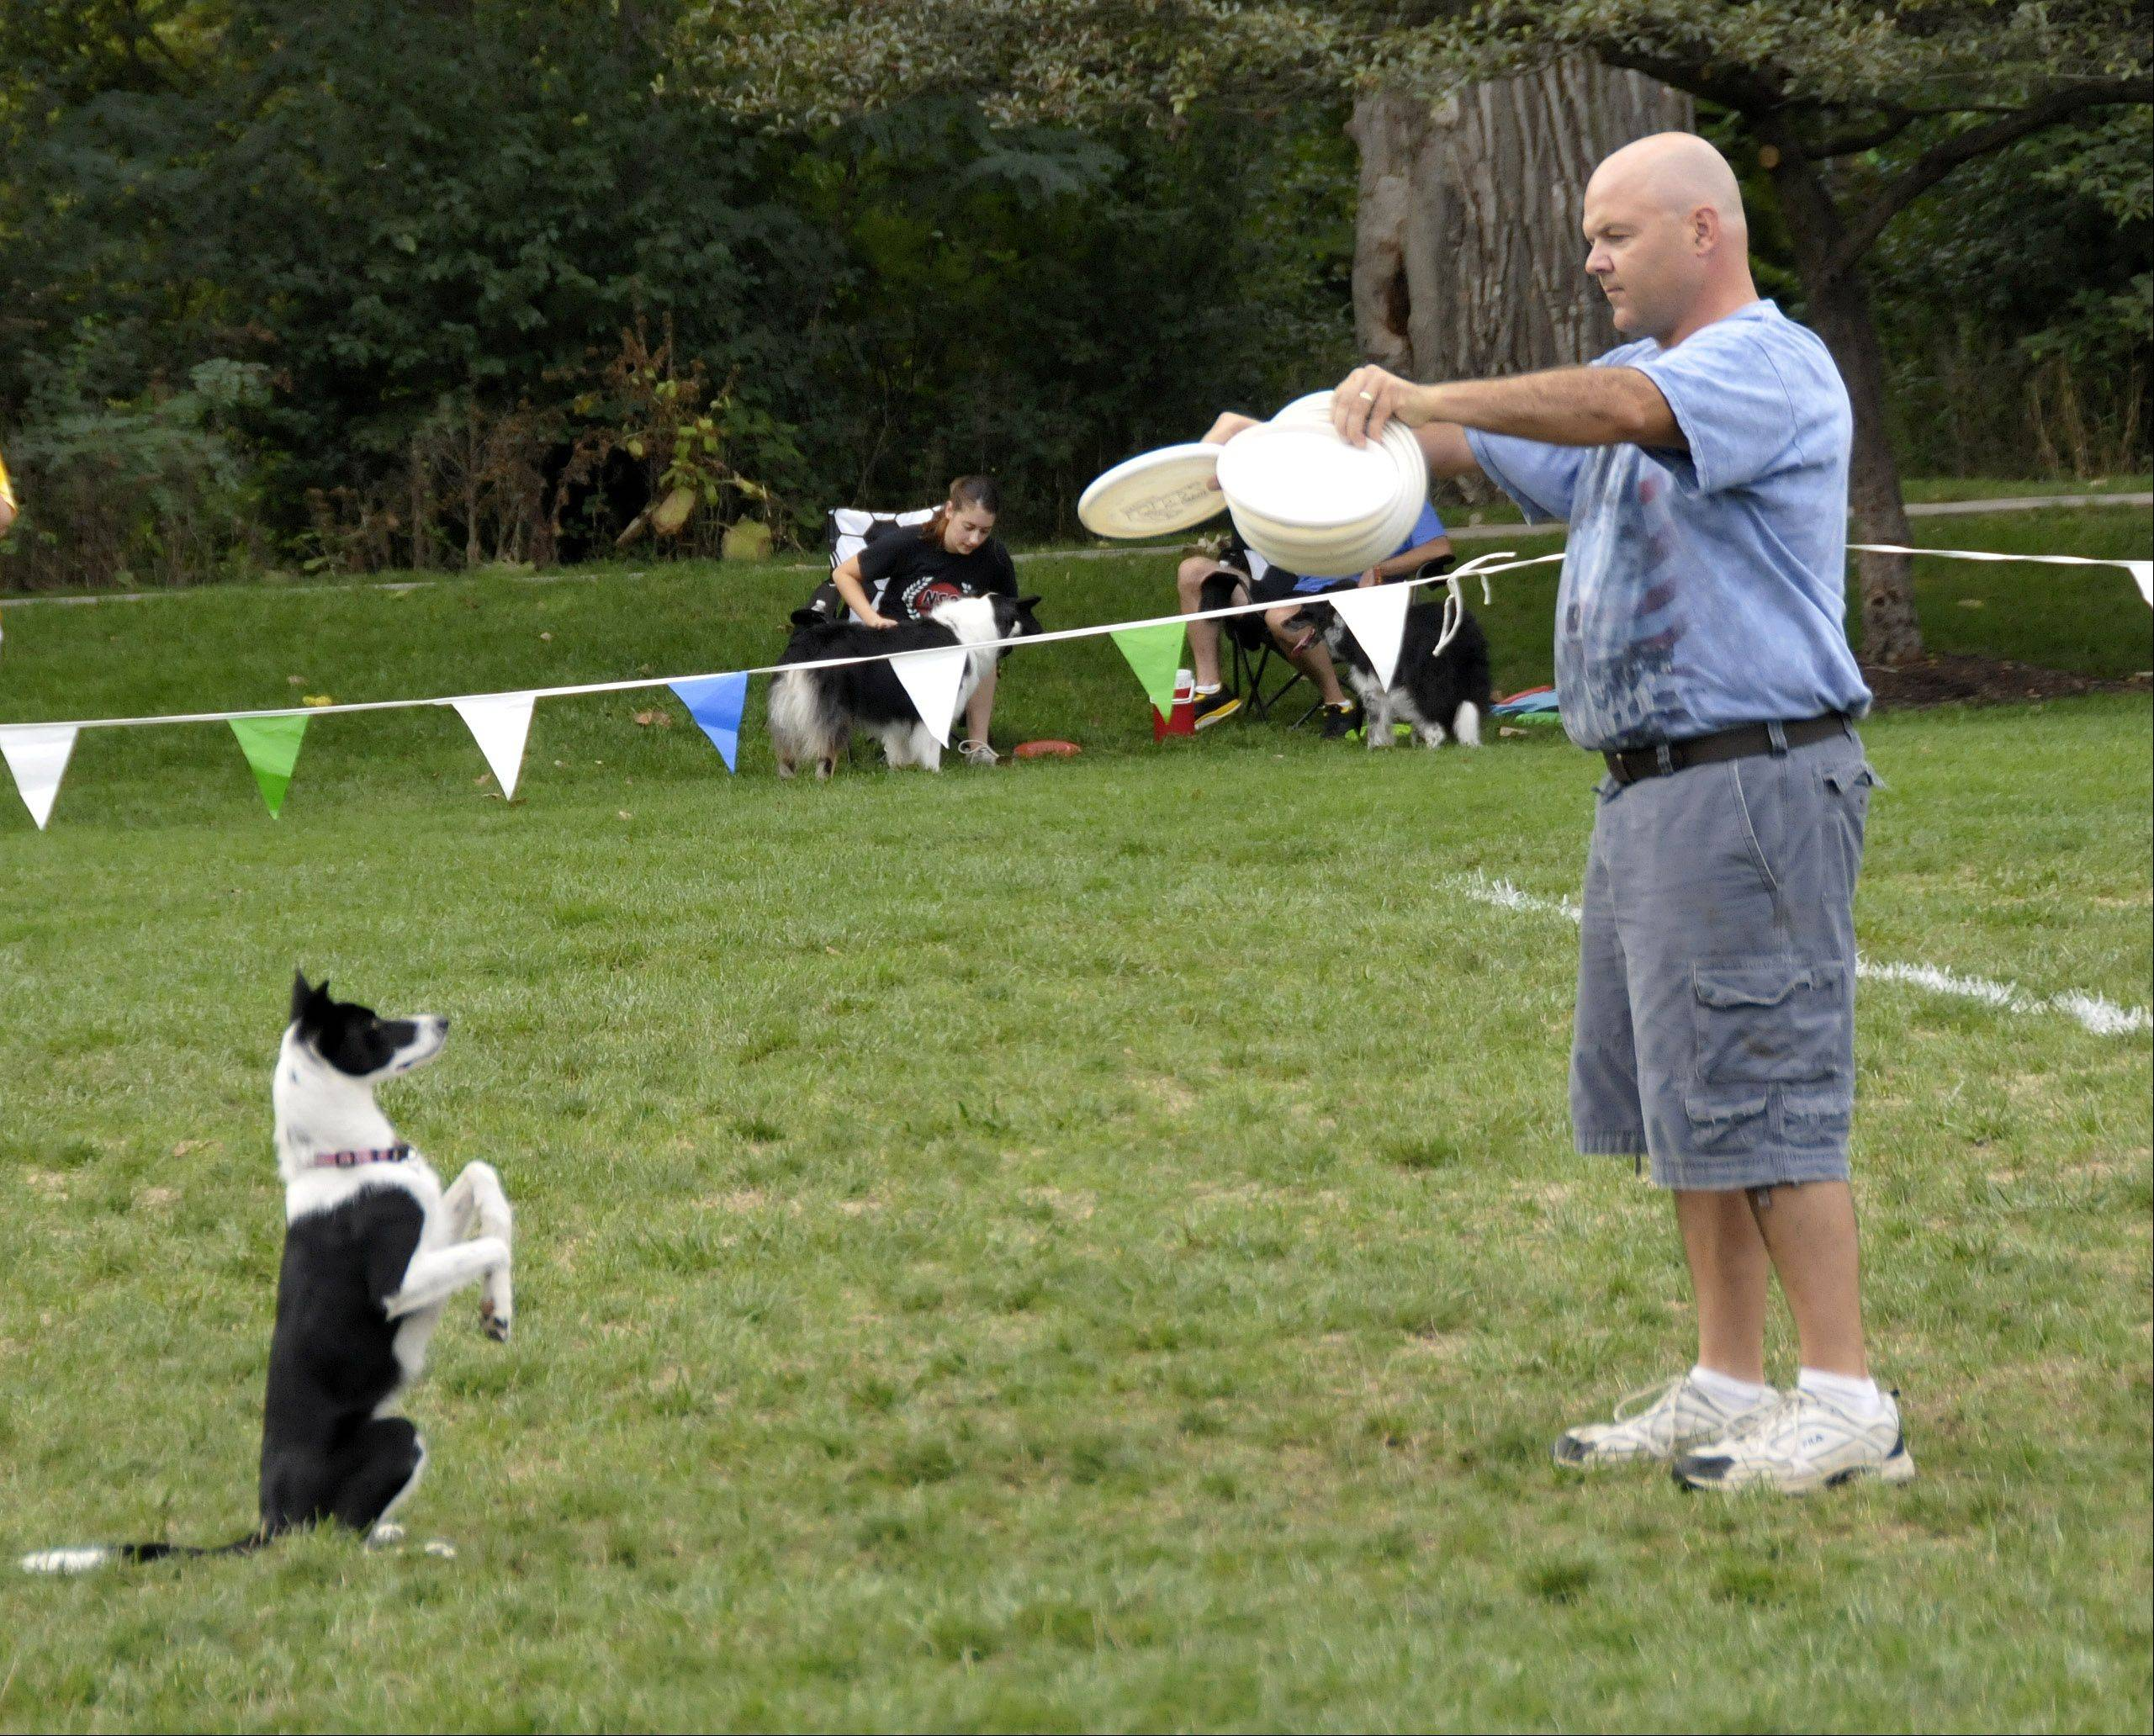 Mark Faragoi, of Plainfield, and Riley, a Border Collie, prepare to do their routine Sunday during the Ashley Whippet Invitational, a dog disc-catching competition that was part of Naperville's Last Fling.